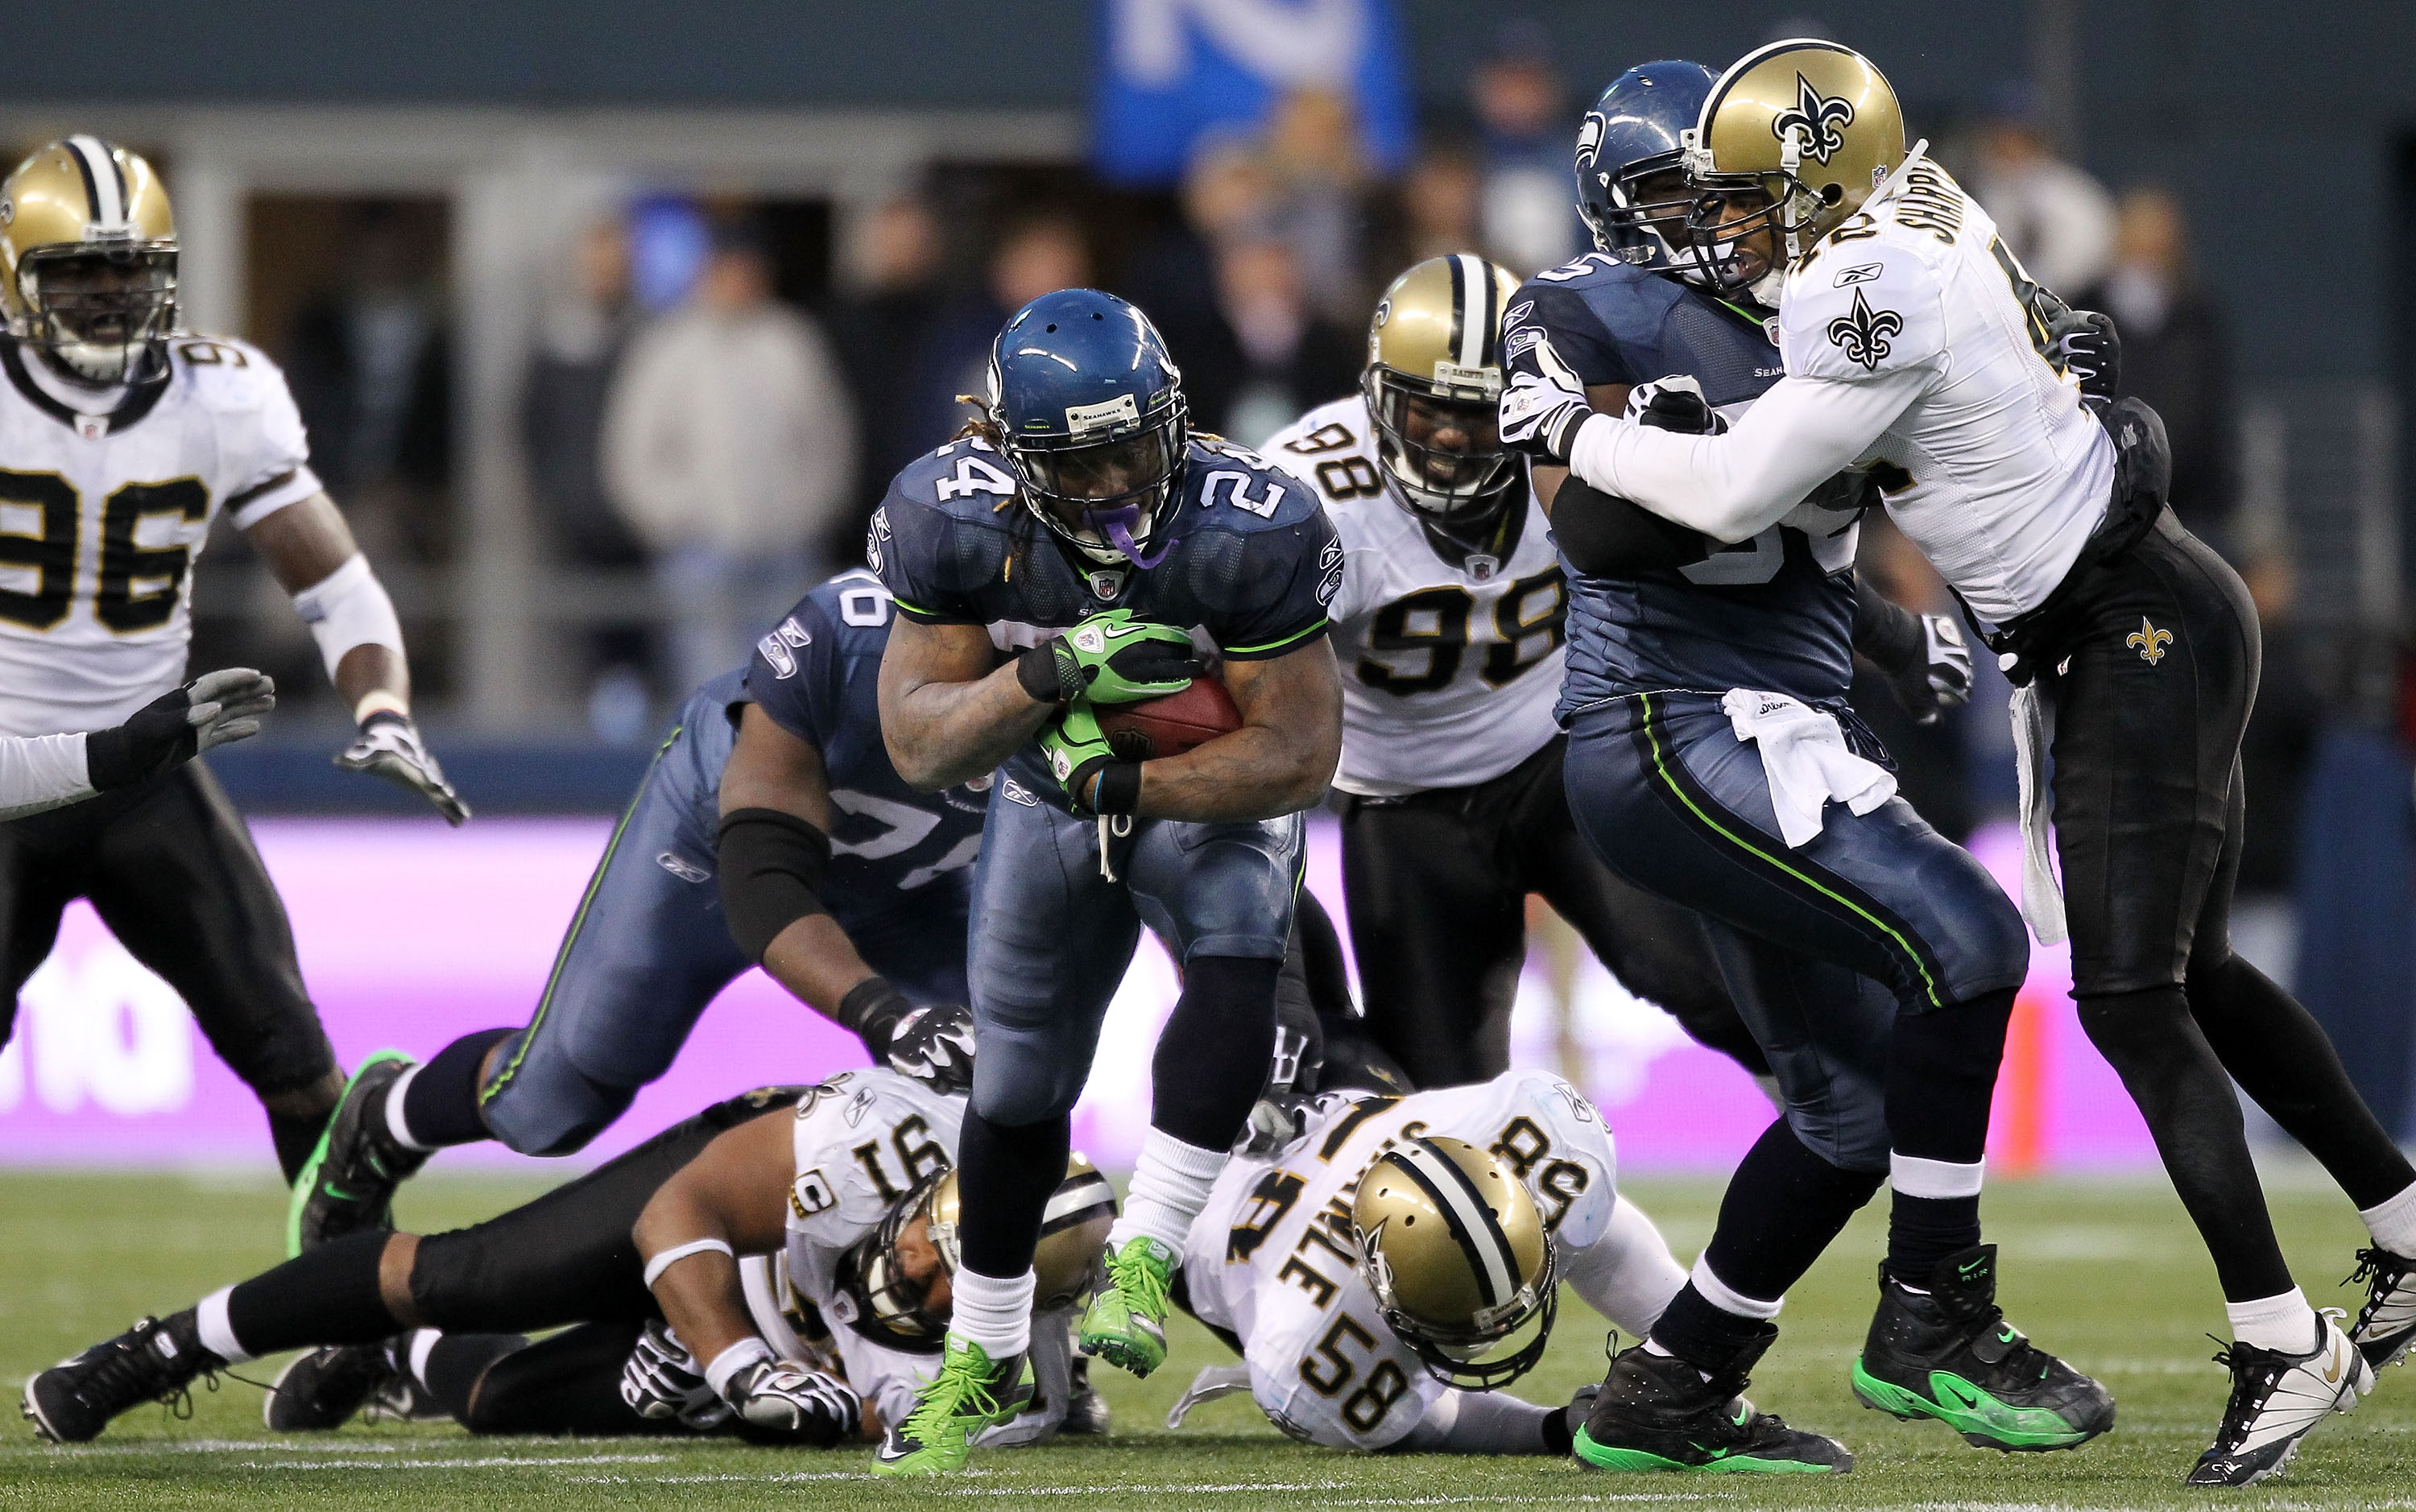 Seattle's Marshawn Lynch effectively ended New Orleans' season with this tackle-smashing 67-yard TD run.